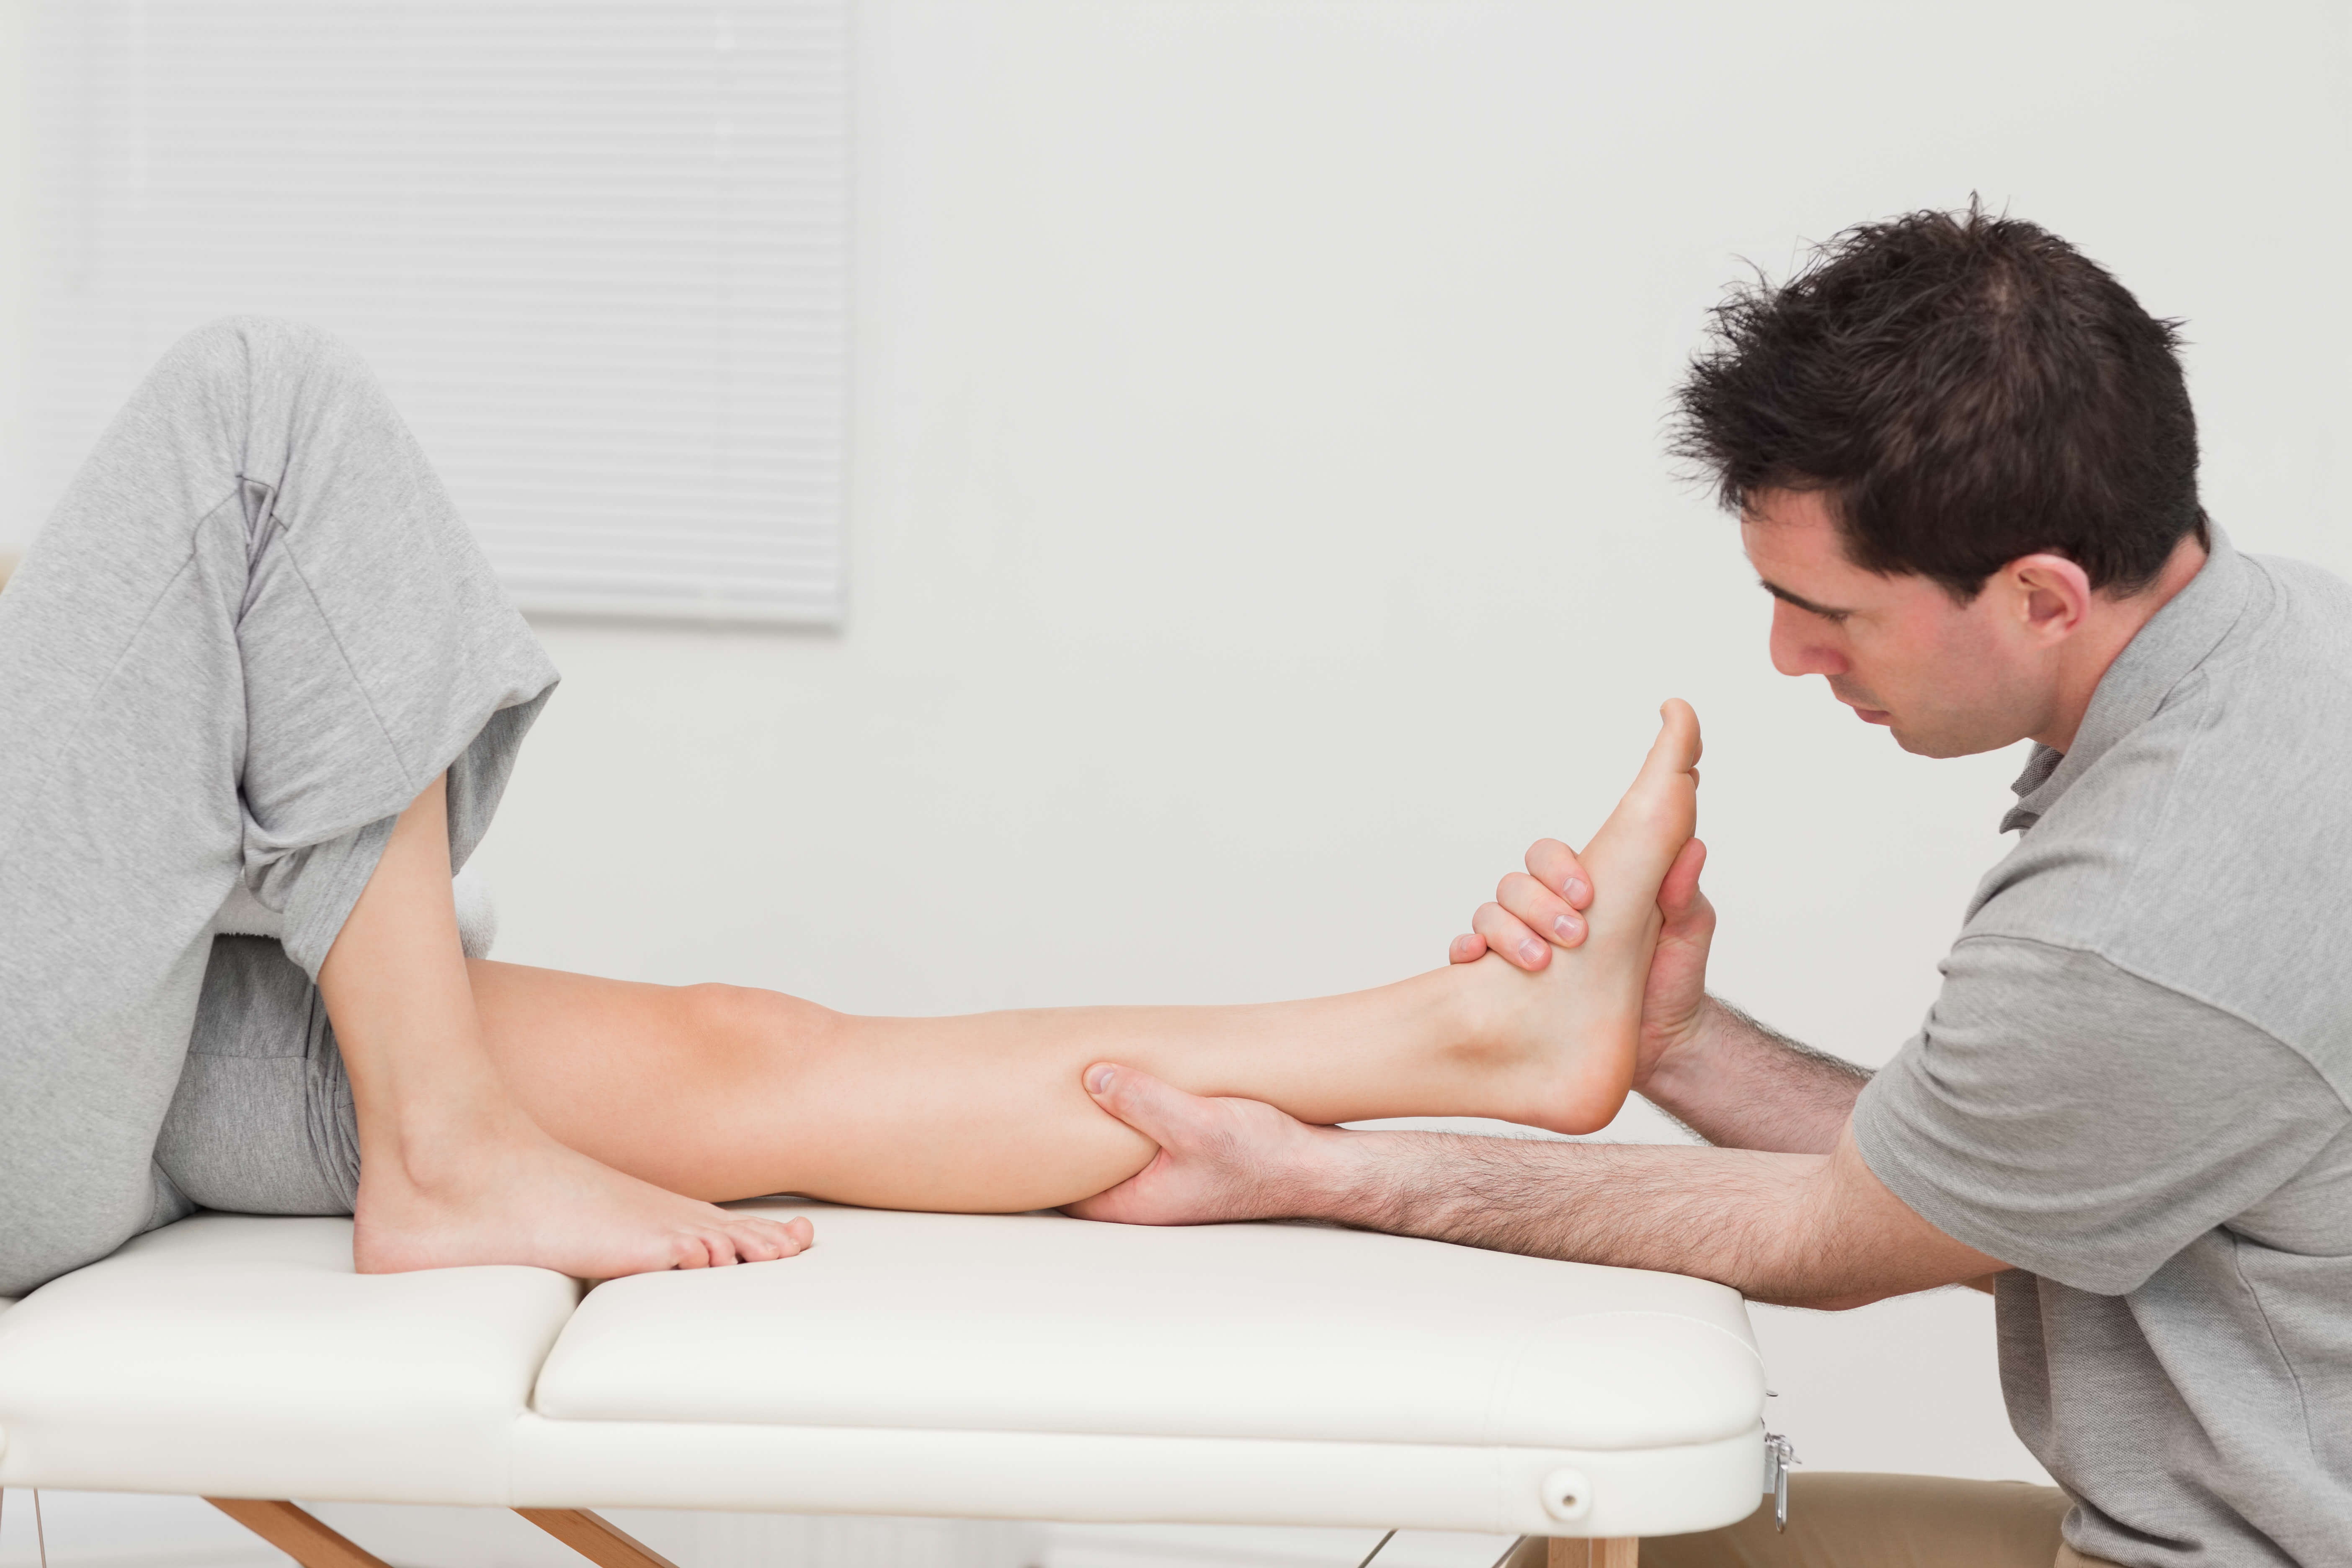 Treating Feet and Ankles